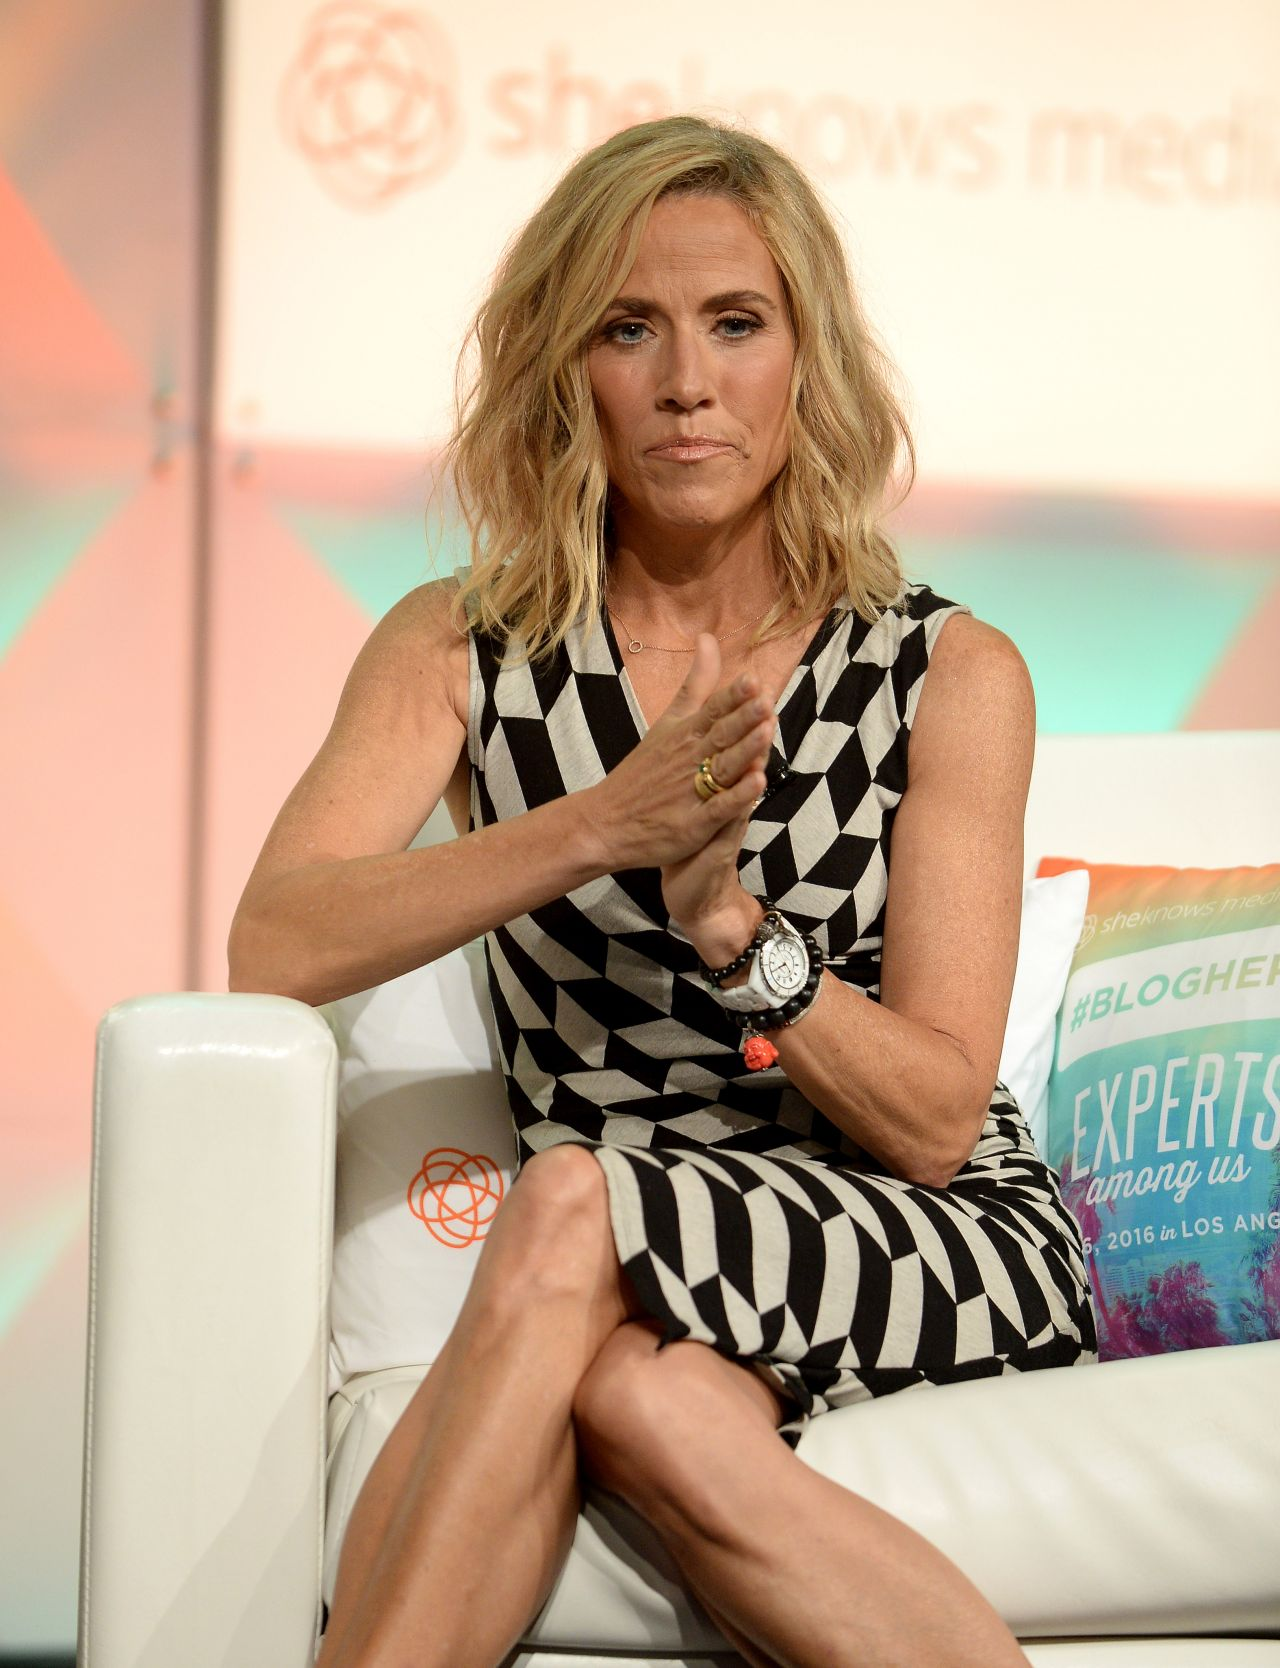 Sheryl Crow – #BlogHer16 Experts Among Us Conference at L ...